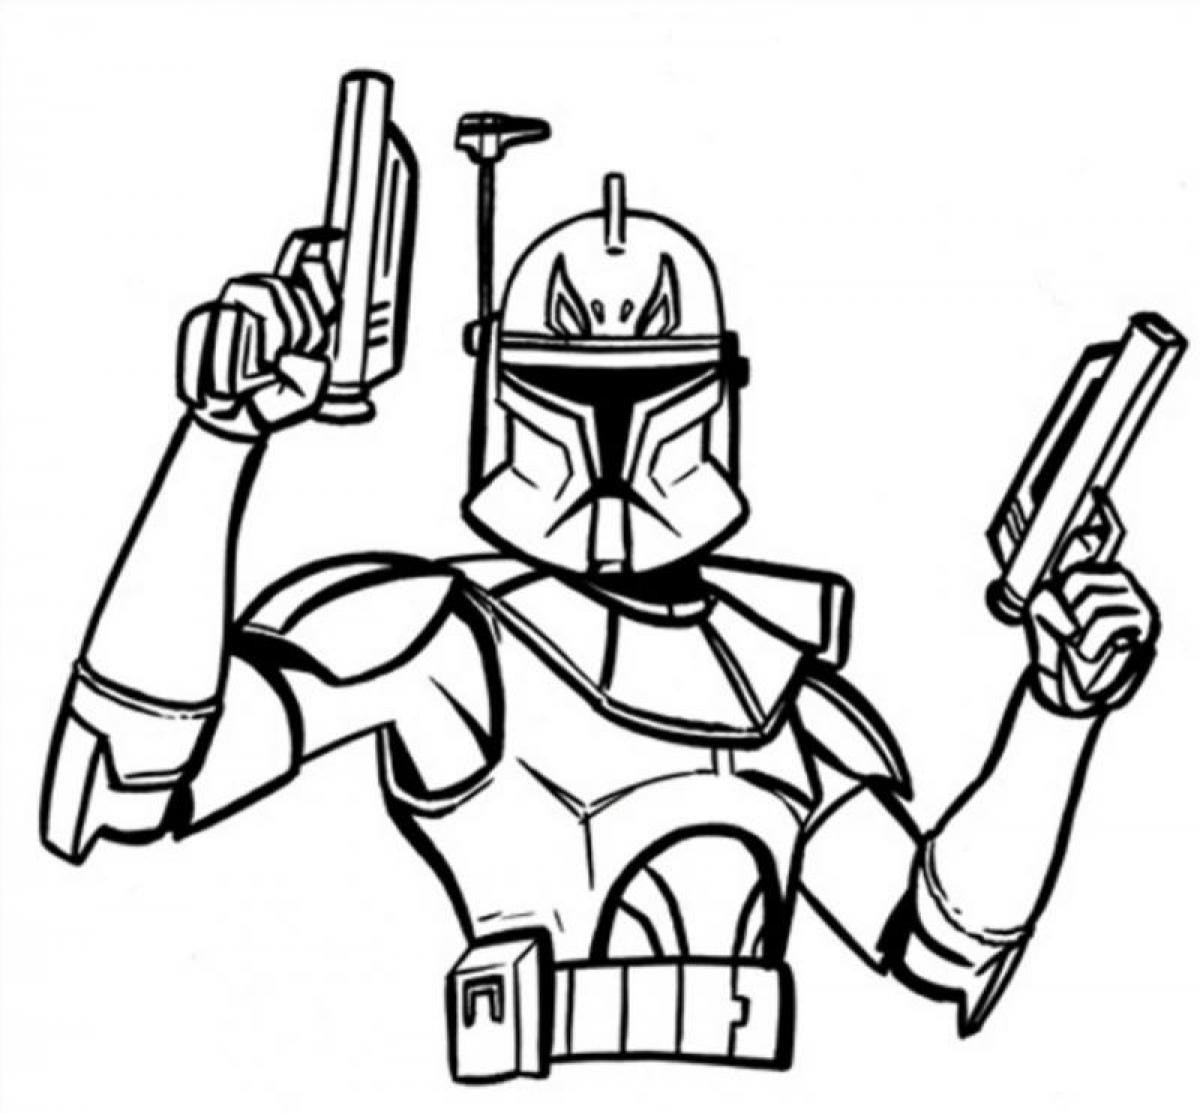 Stormtrooper Coloring Page Stormtrooper Coloring Pages Printable Stormtrooper Coloring Page